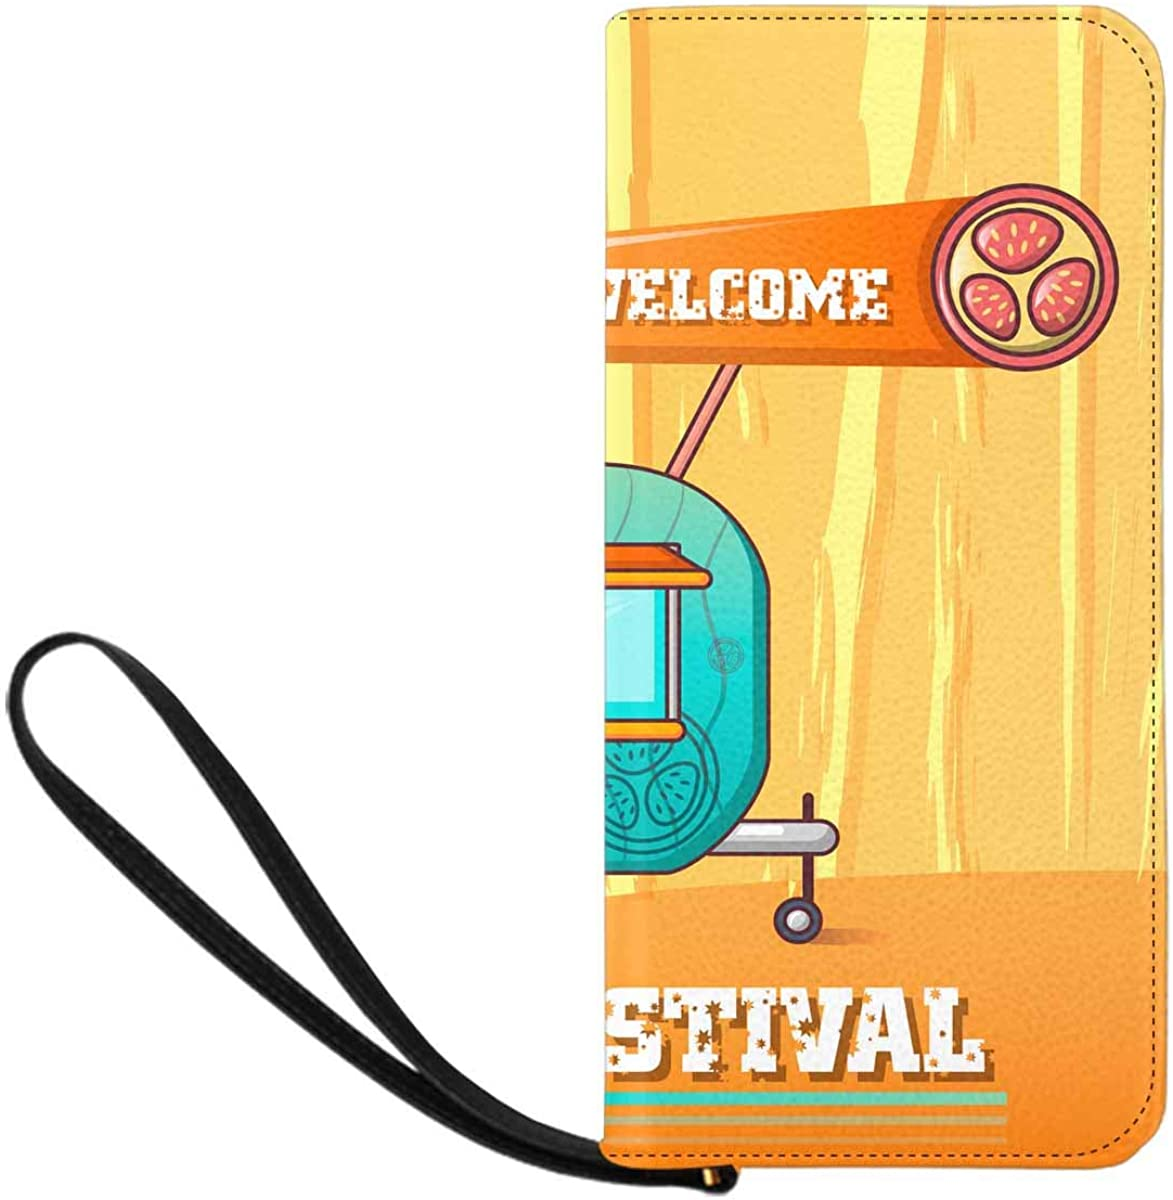 INTERESTPRINT Welcome Pizza Festival Purse Clutch Bag Wristlet Wallet with Strap